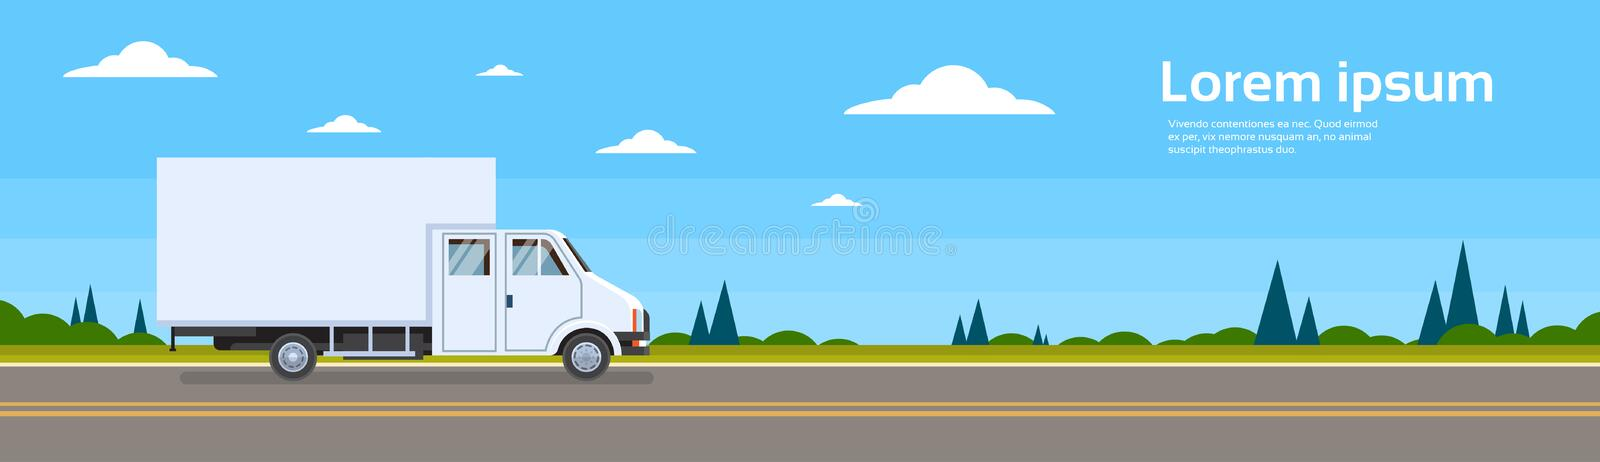 Truck Lorry Car On Road Cargo Shipping Delivery. Banner Flat Vector Illustration stock illustration